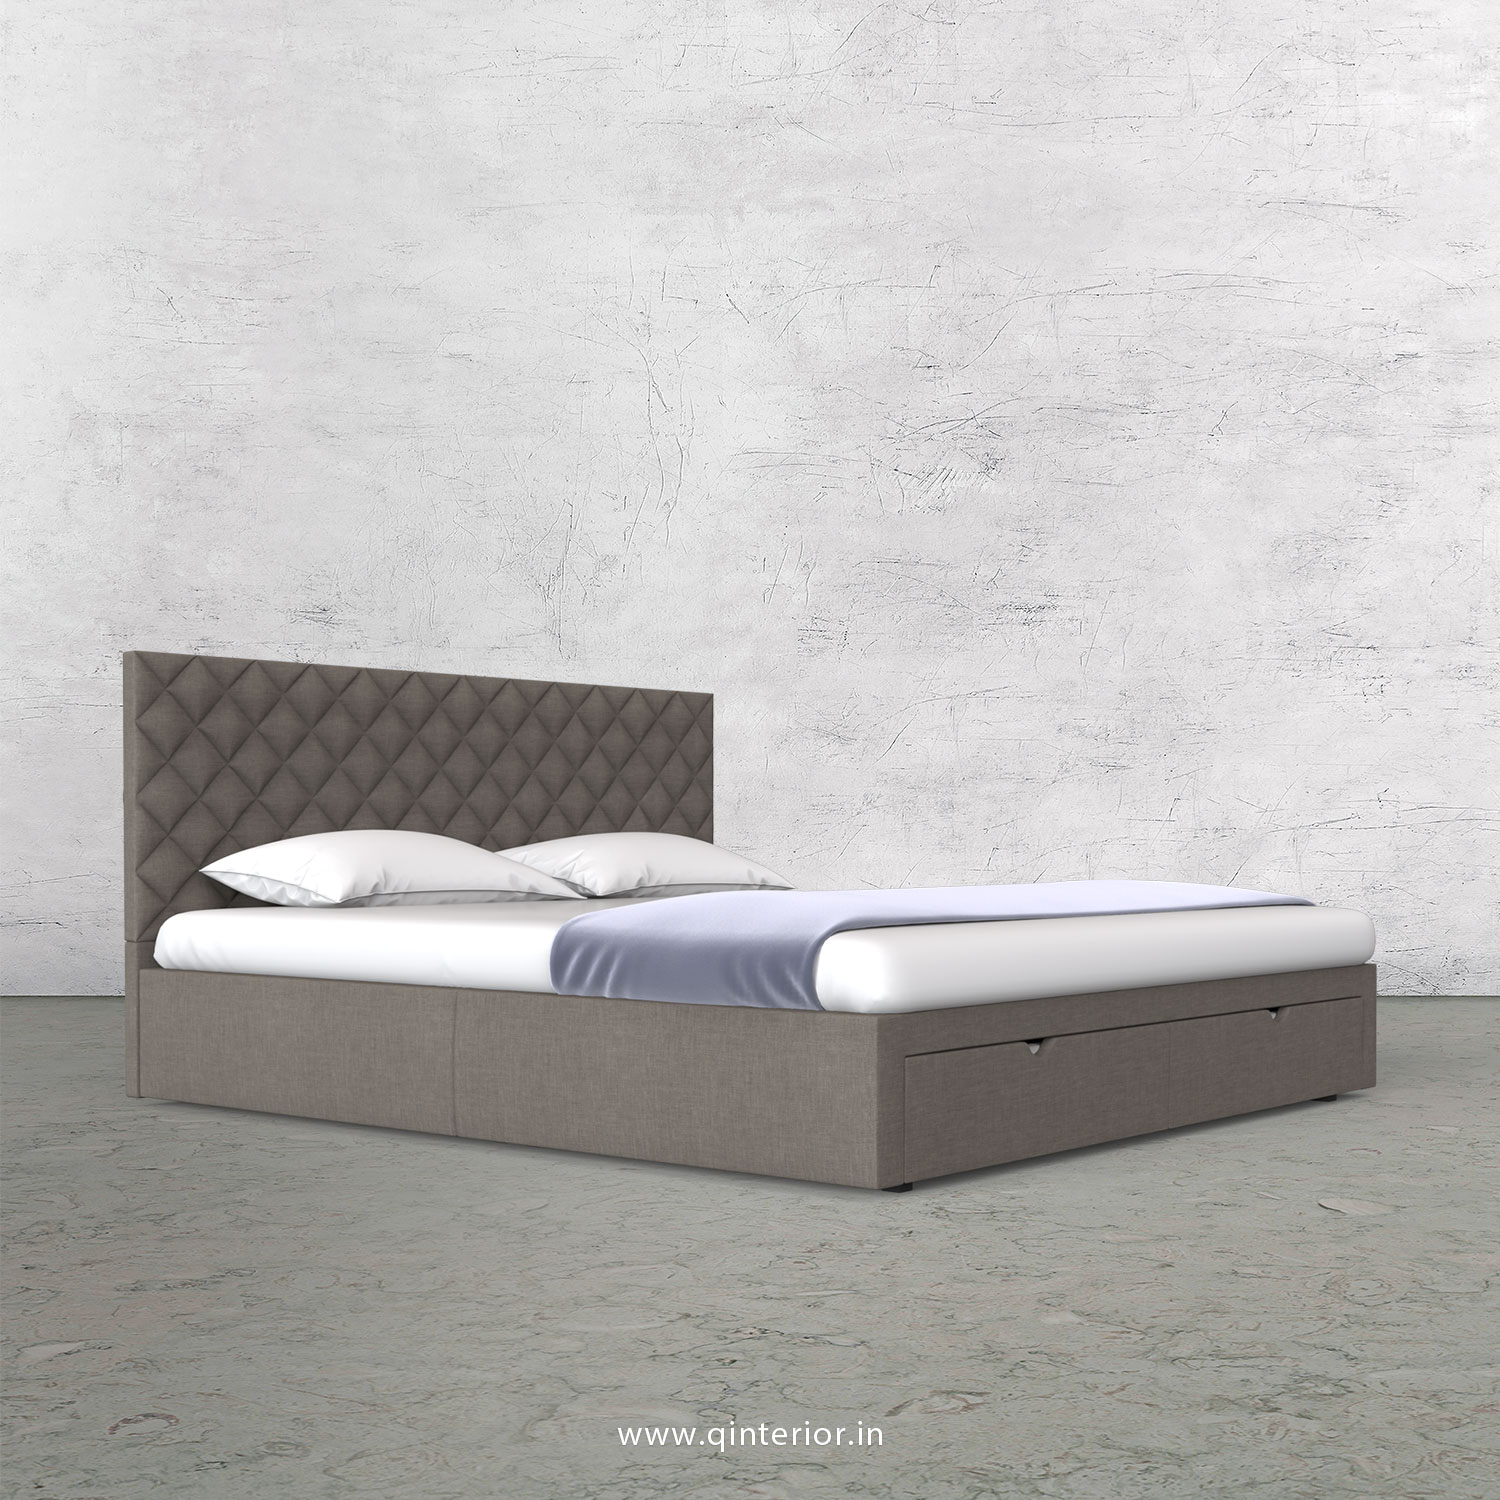 Orion King Size Storage Bed in Cotton Plain - KBD001 CP11